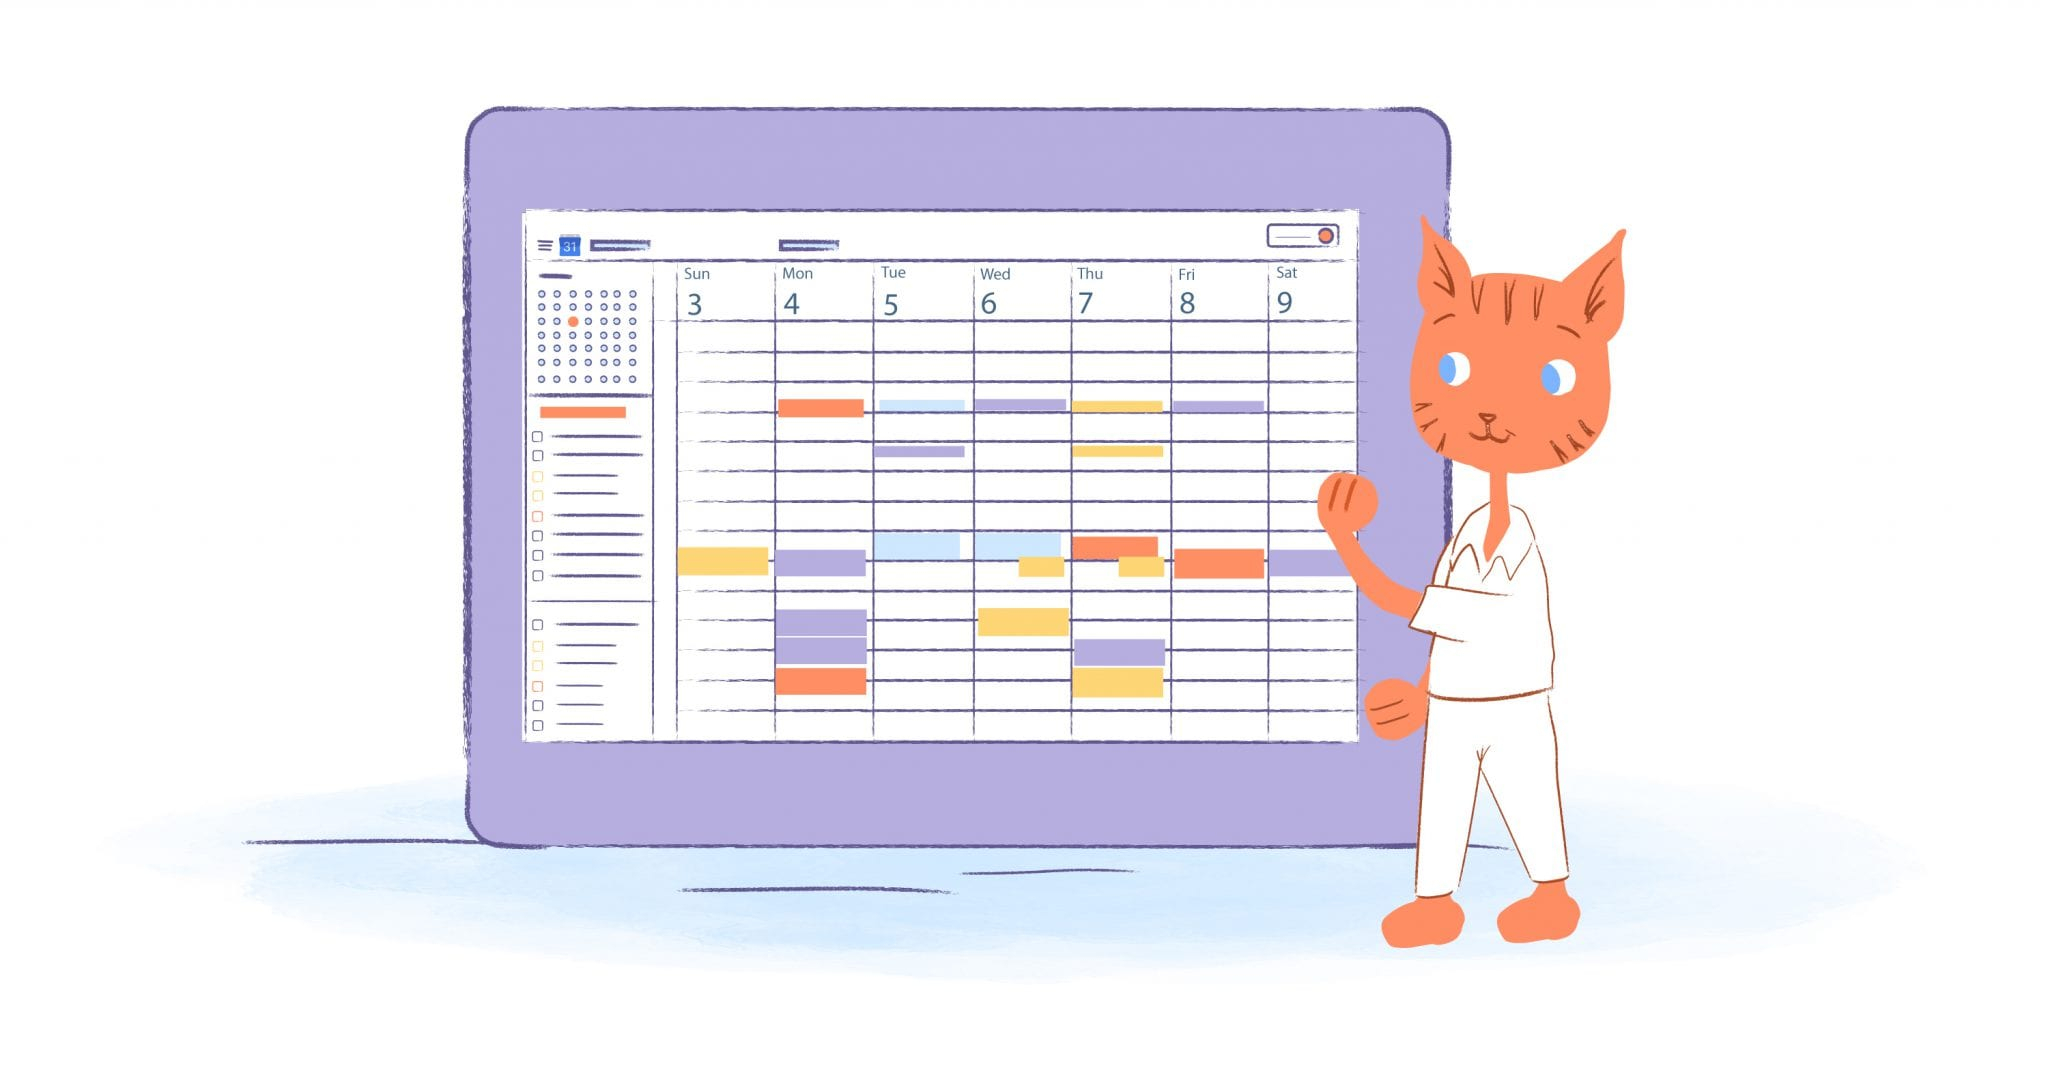 The Ultimate Guide To Google Calendar  Calendar throughout Outlook We Couldn't Find This Meeting In The Calendar